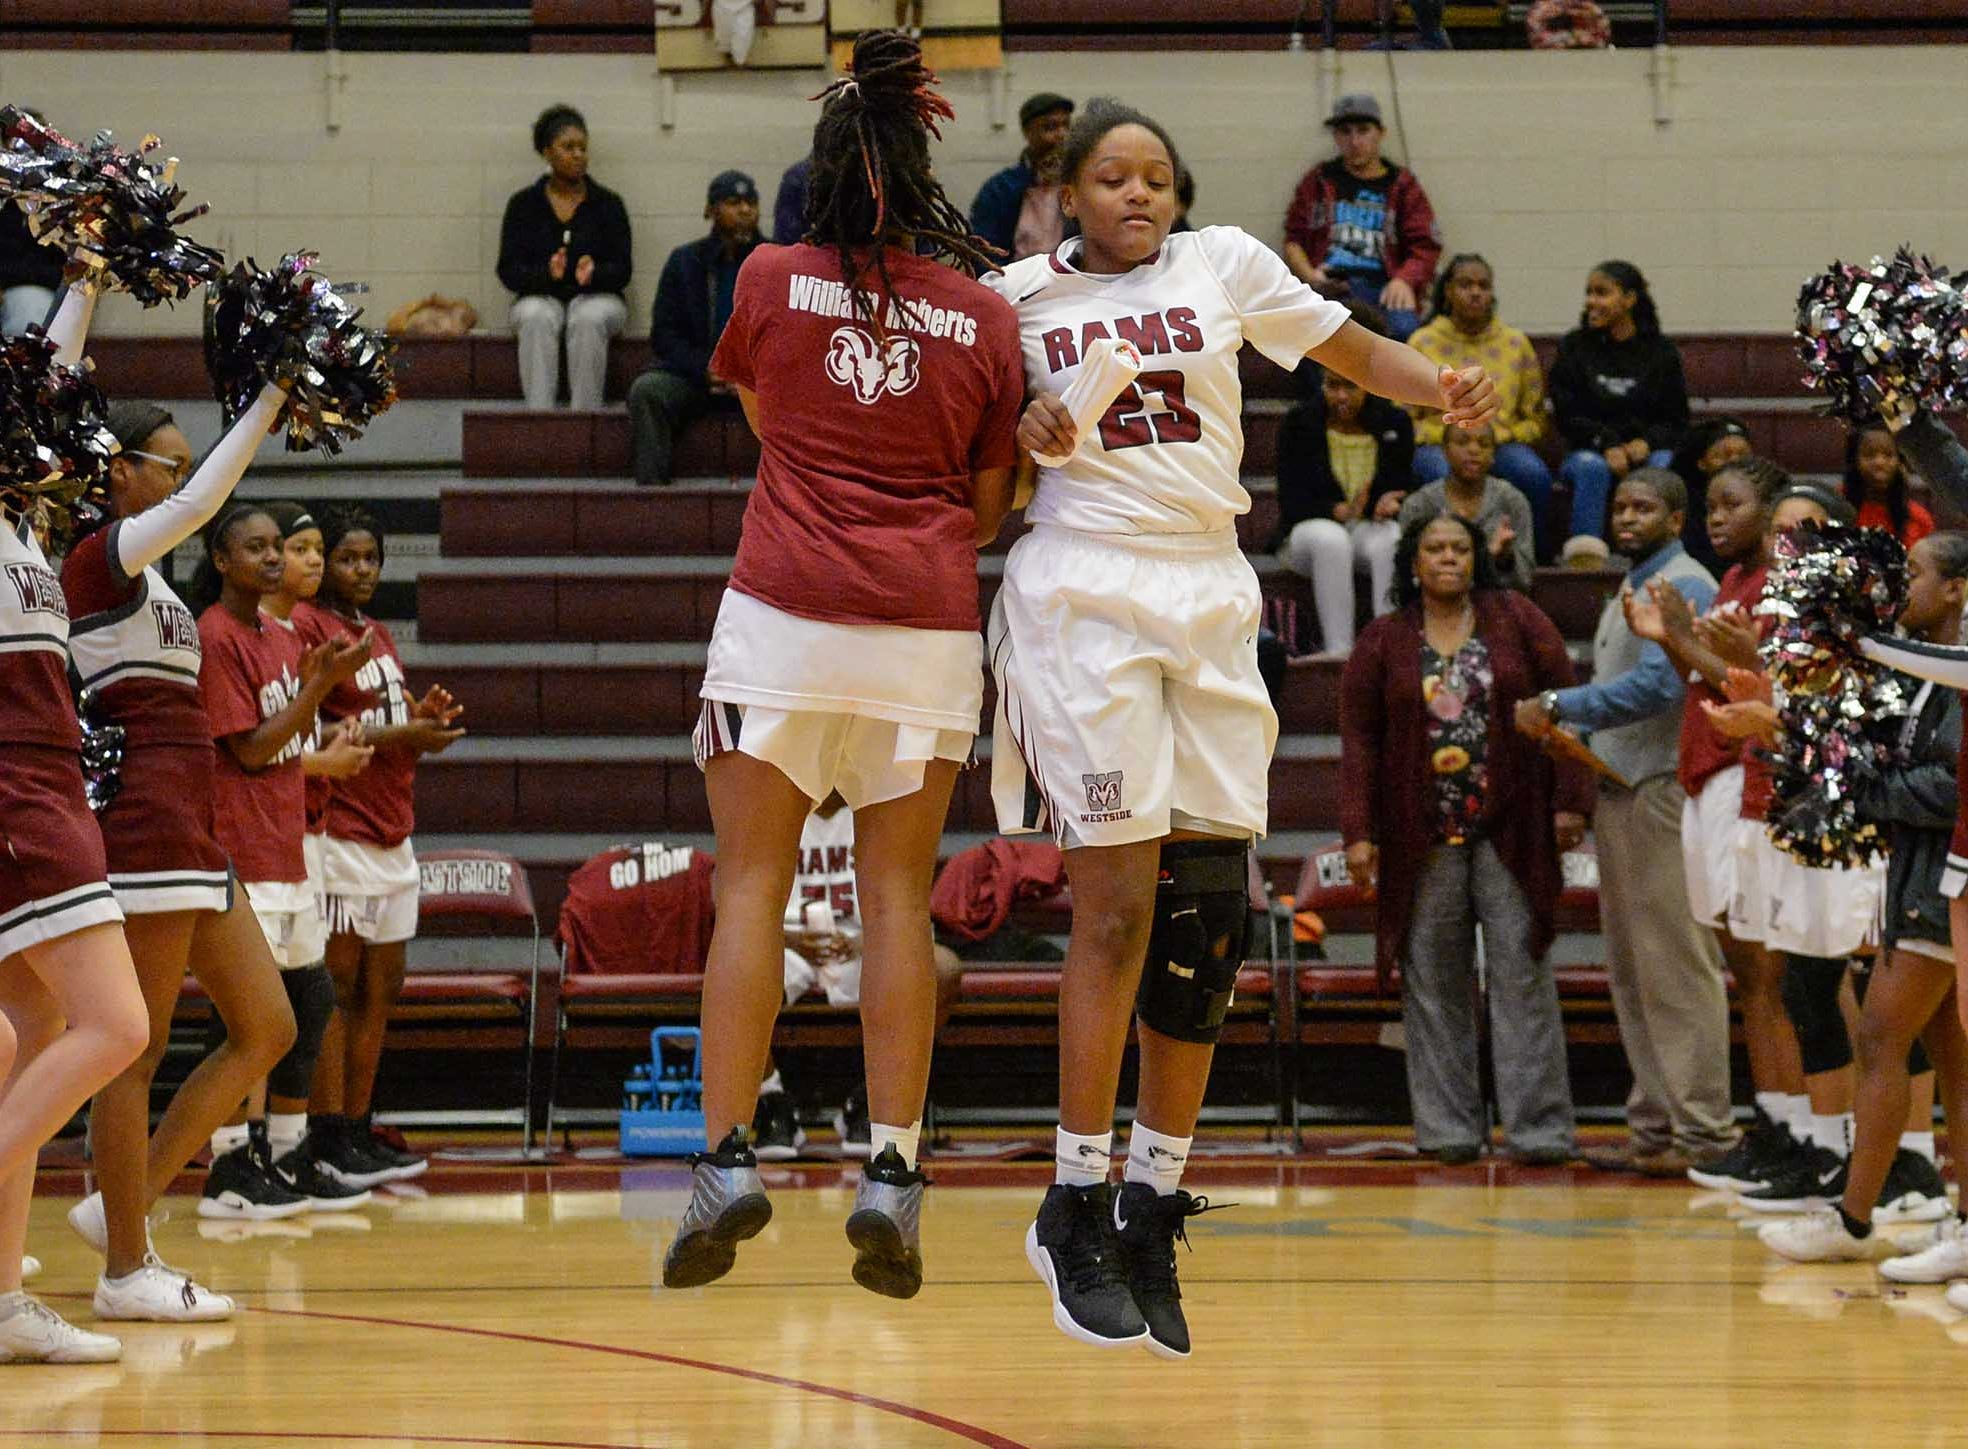 Westside freshman Keazia Hatten(23) is introduced before the game with Easley at Westside High School in Anderson on Friday.